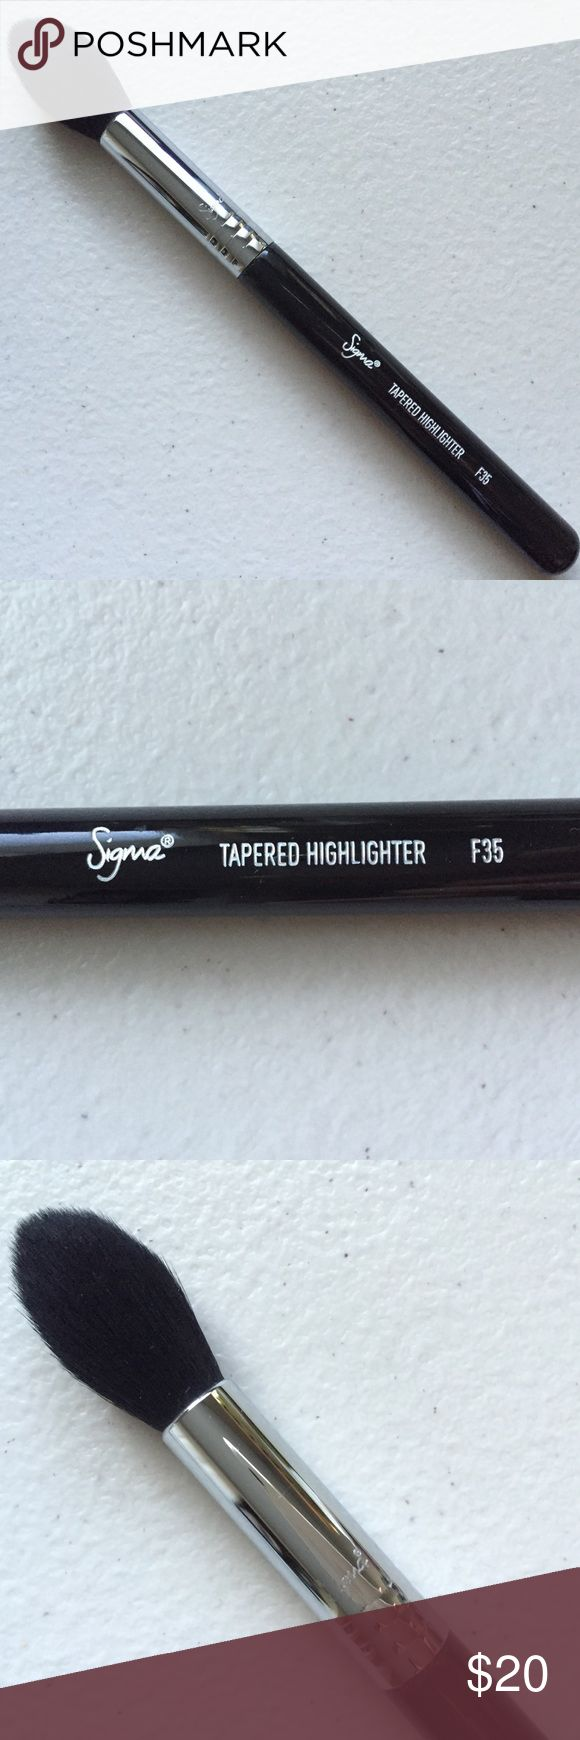 New Sigma Highlight Brush New & unused without packaging